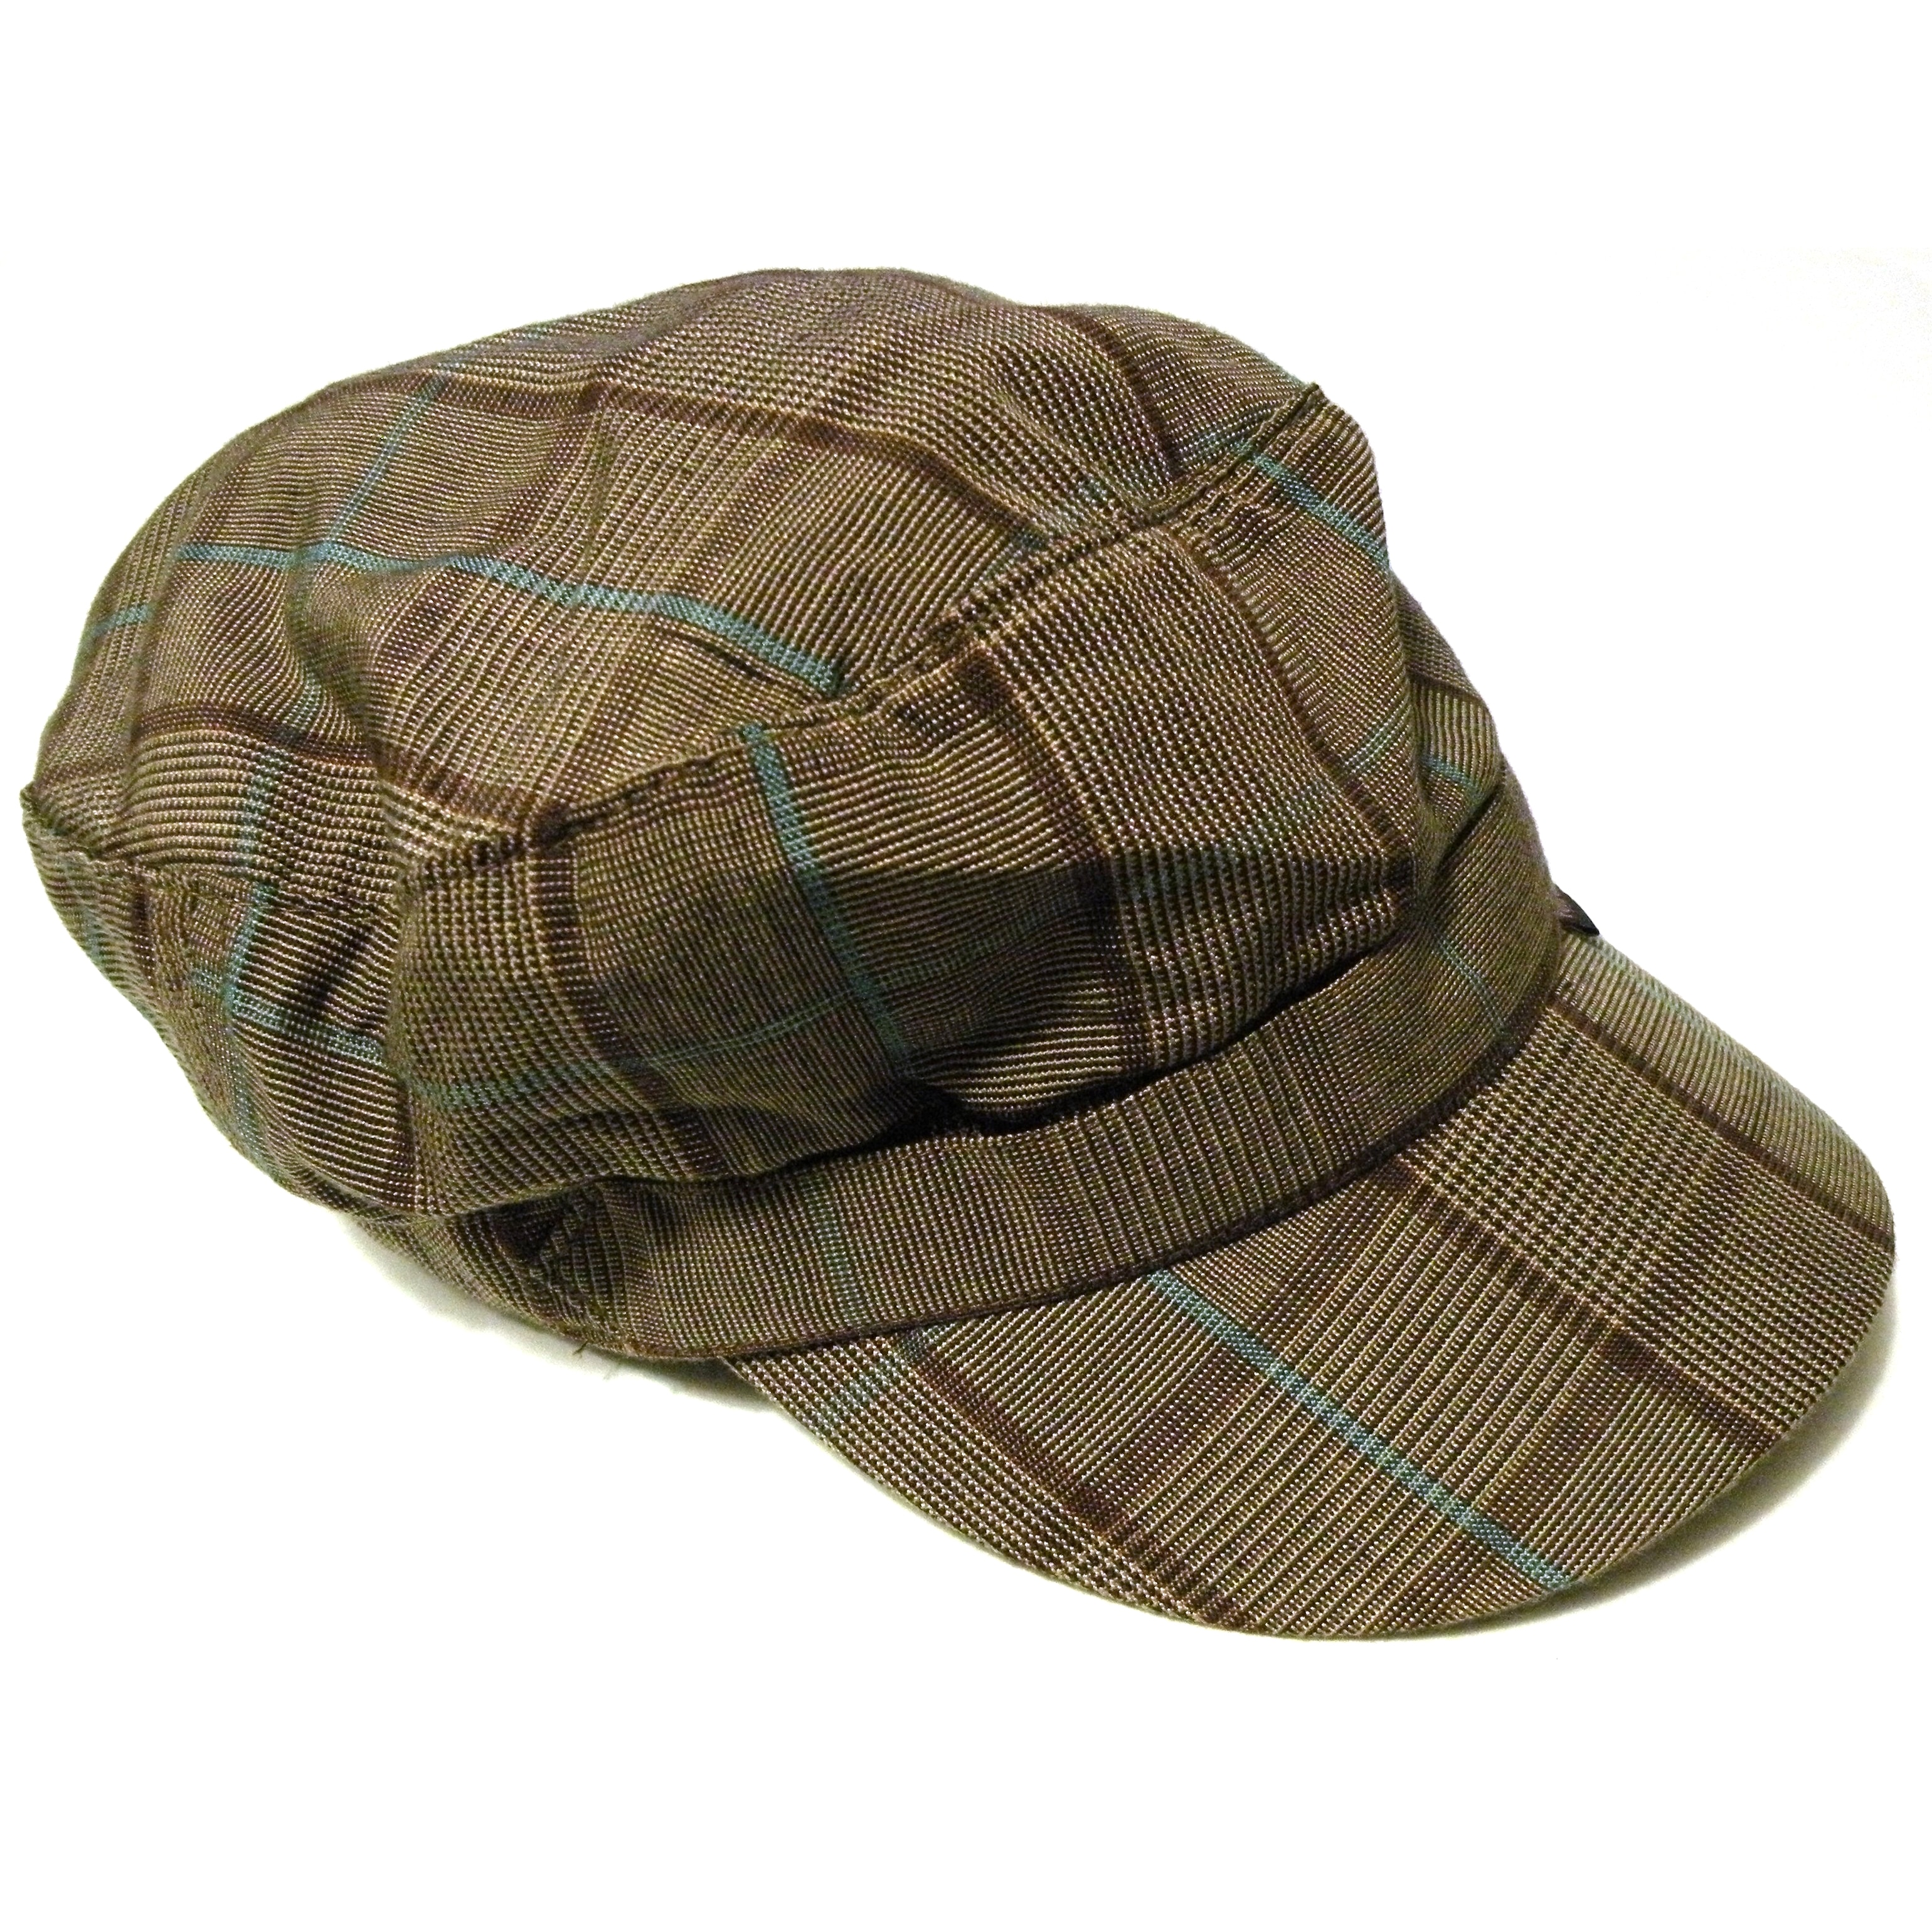 Pug Gear Women's Brown Plaid Newsboy Hat at Sears.com